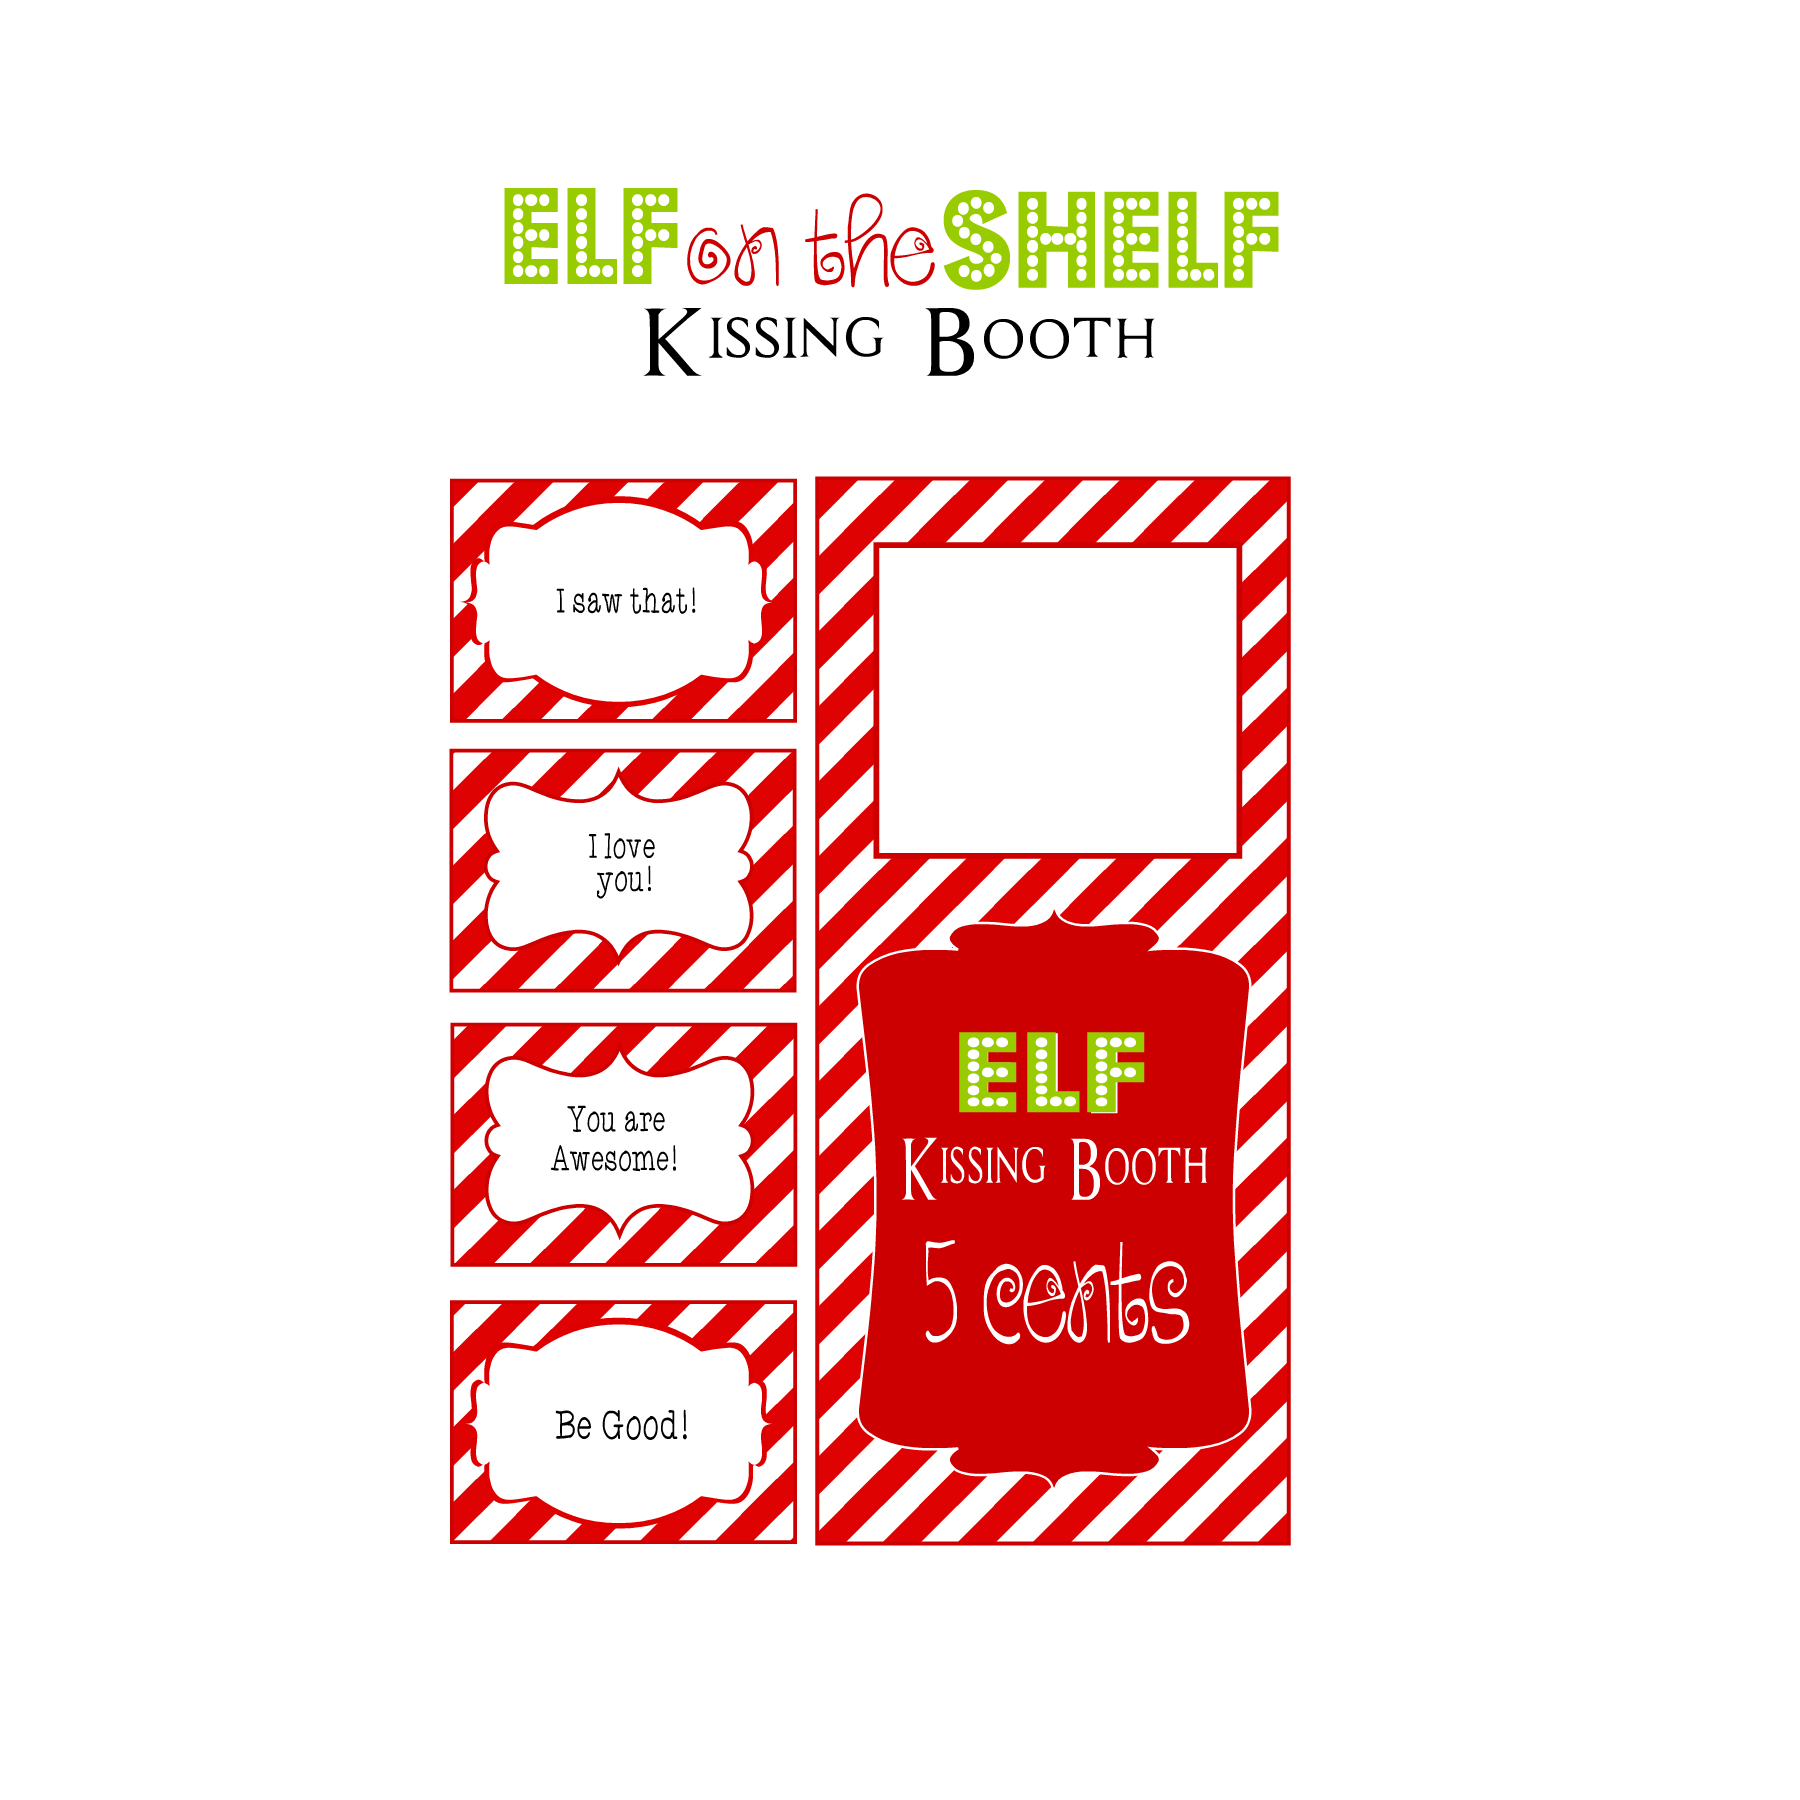 photograph regarding Elf on the Shelf Kissing Booth Free Printable known as Pin by means of atropea upon Guidelines Elf upon shelf printables, Kissing